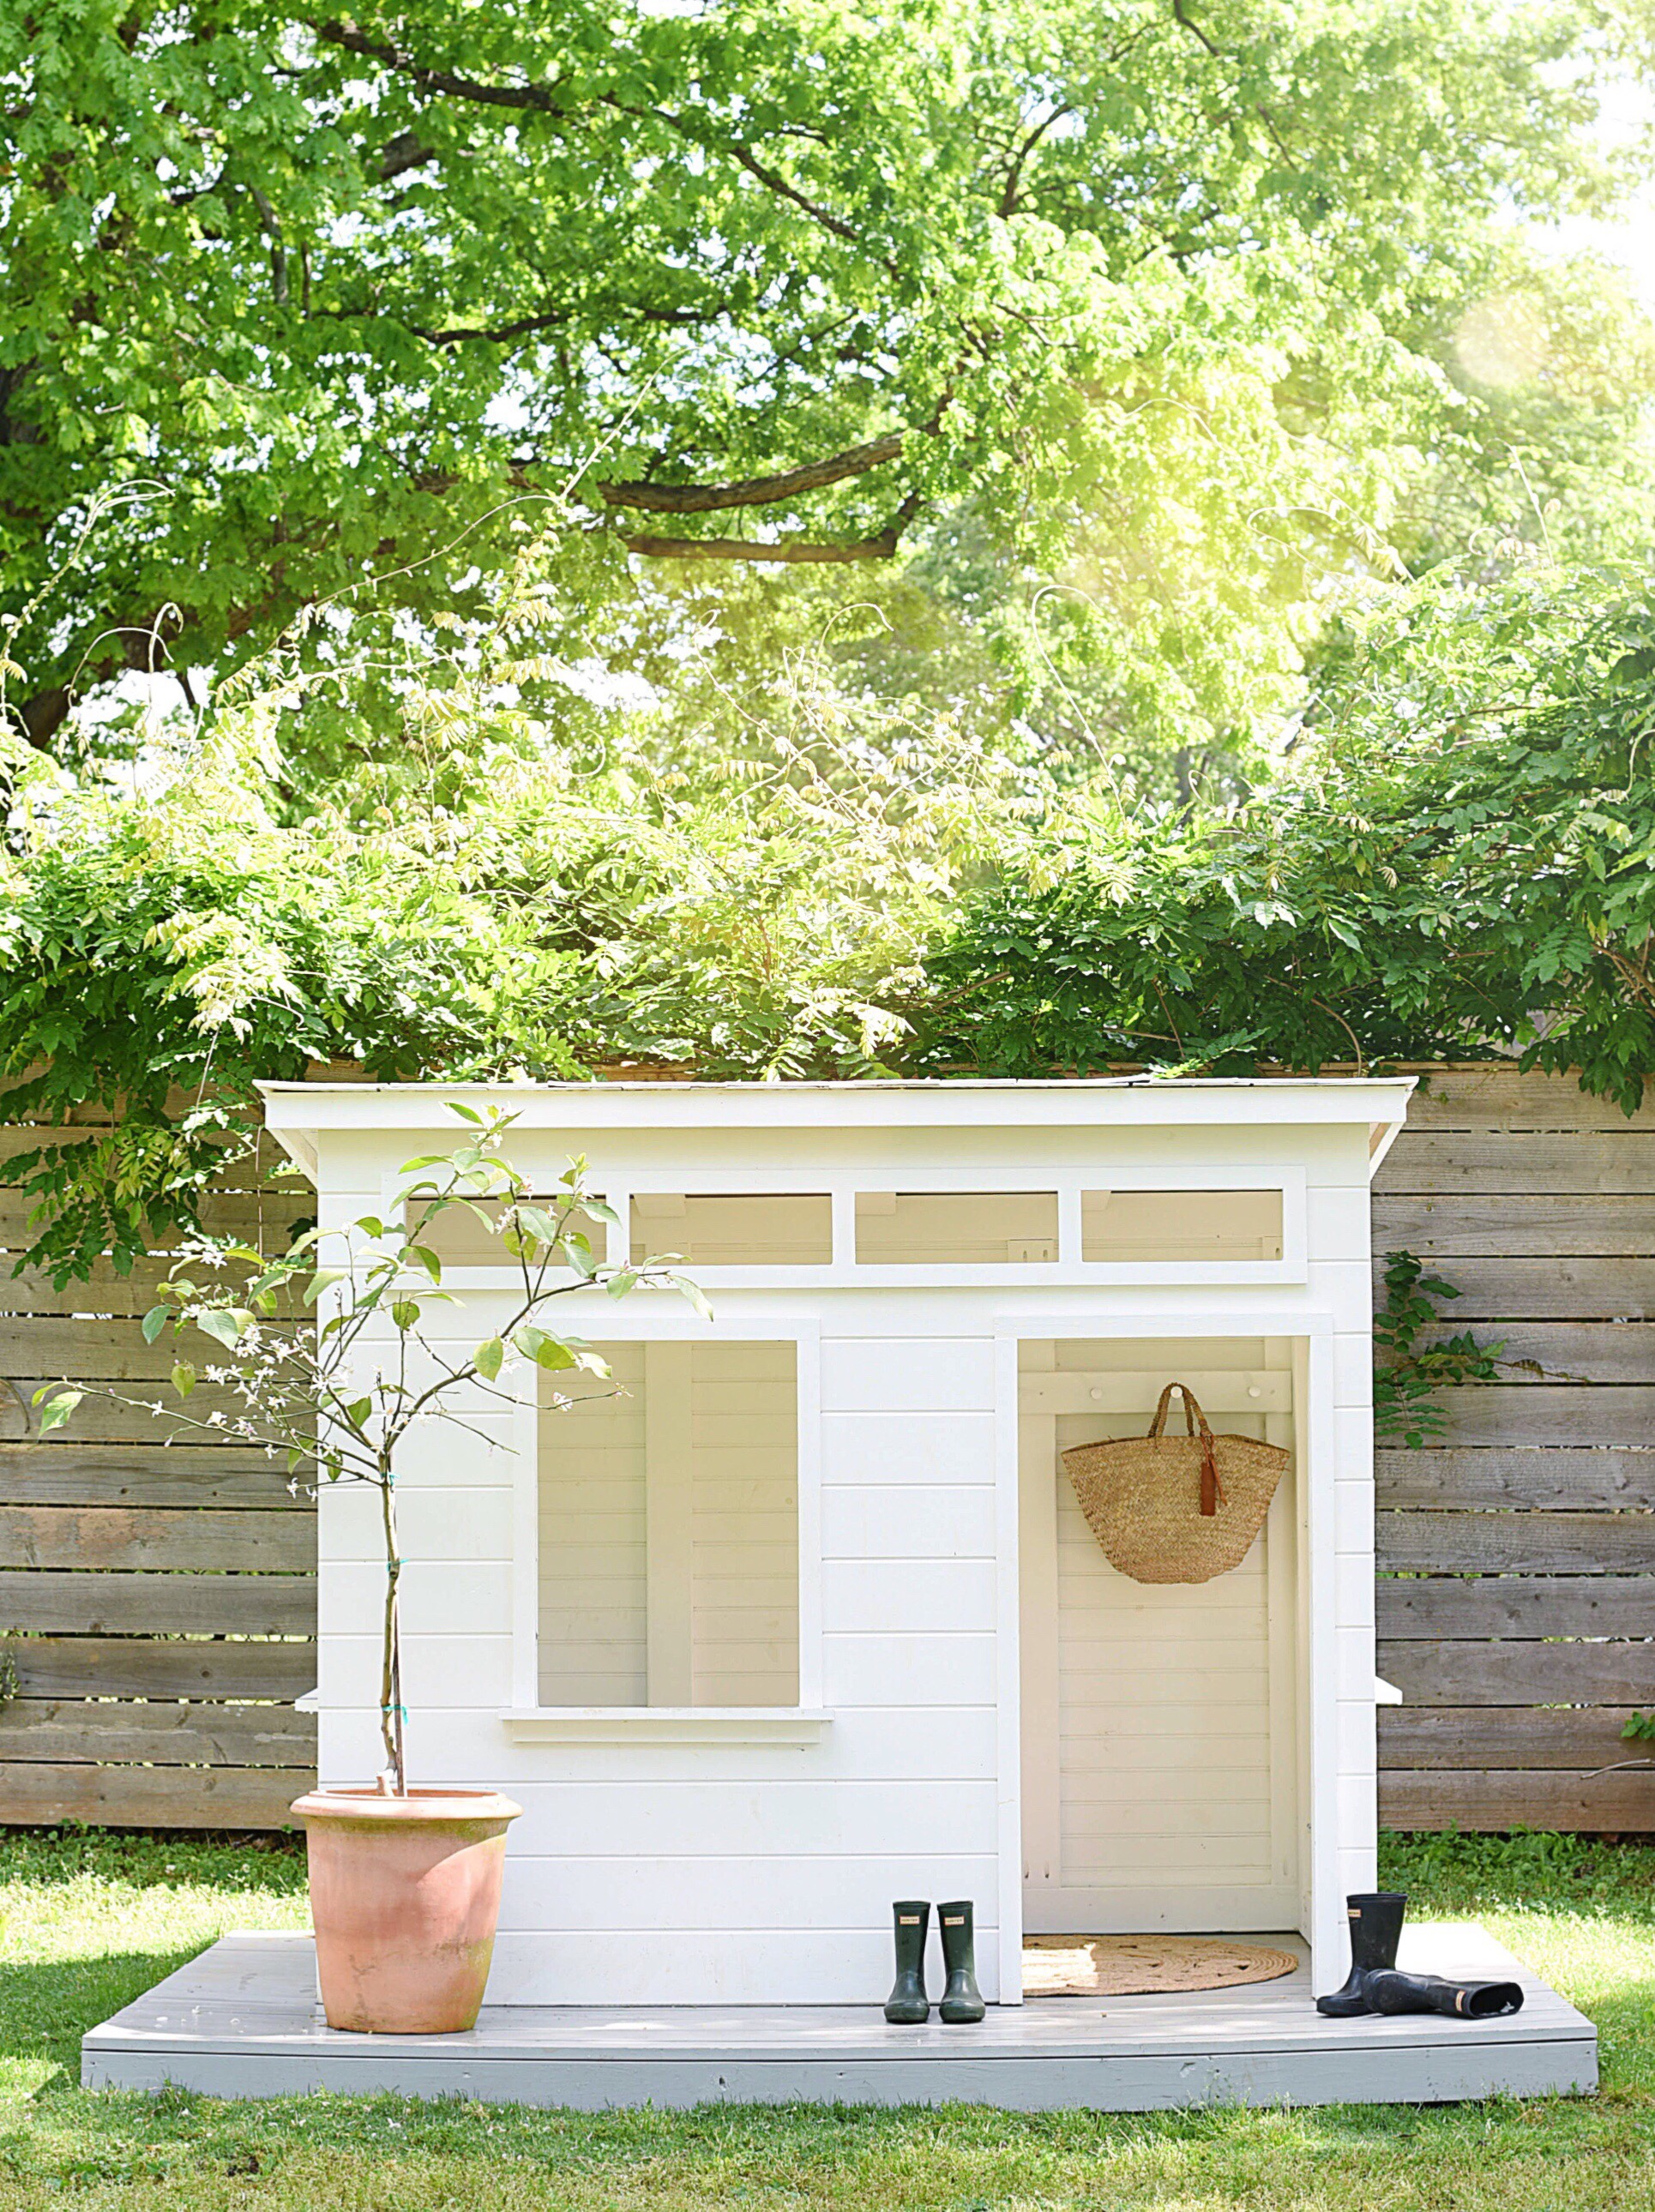 Adorable Modern Playhouse by Michelle Cannon Smith